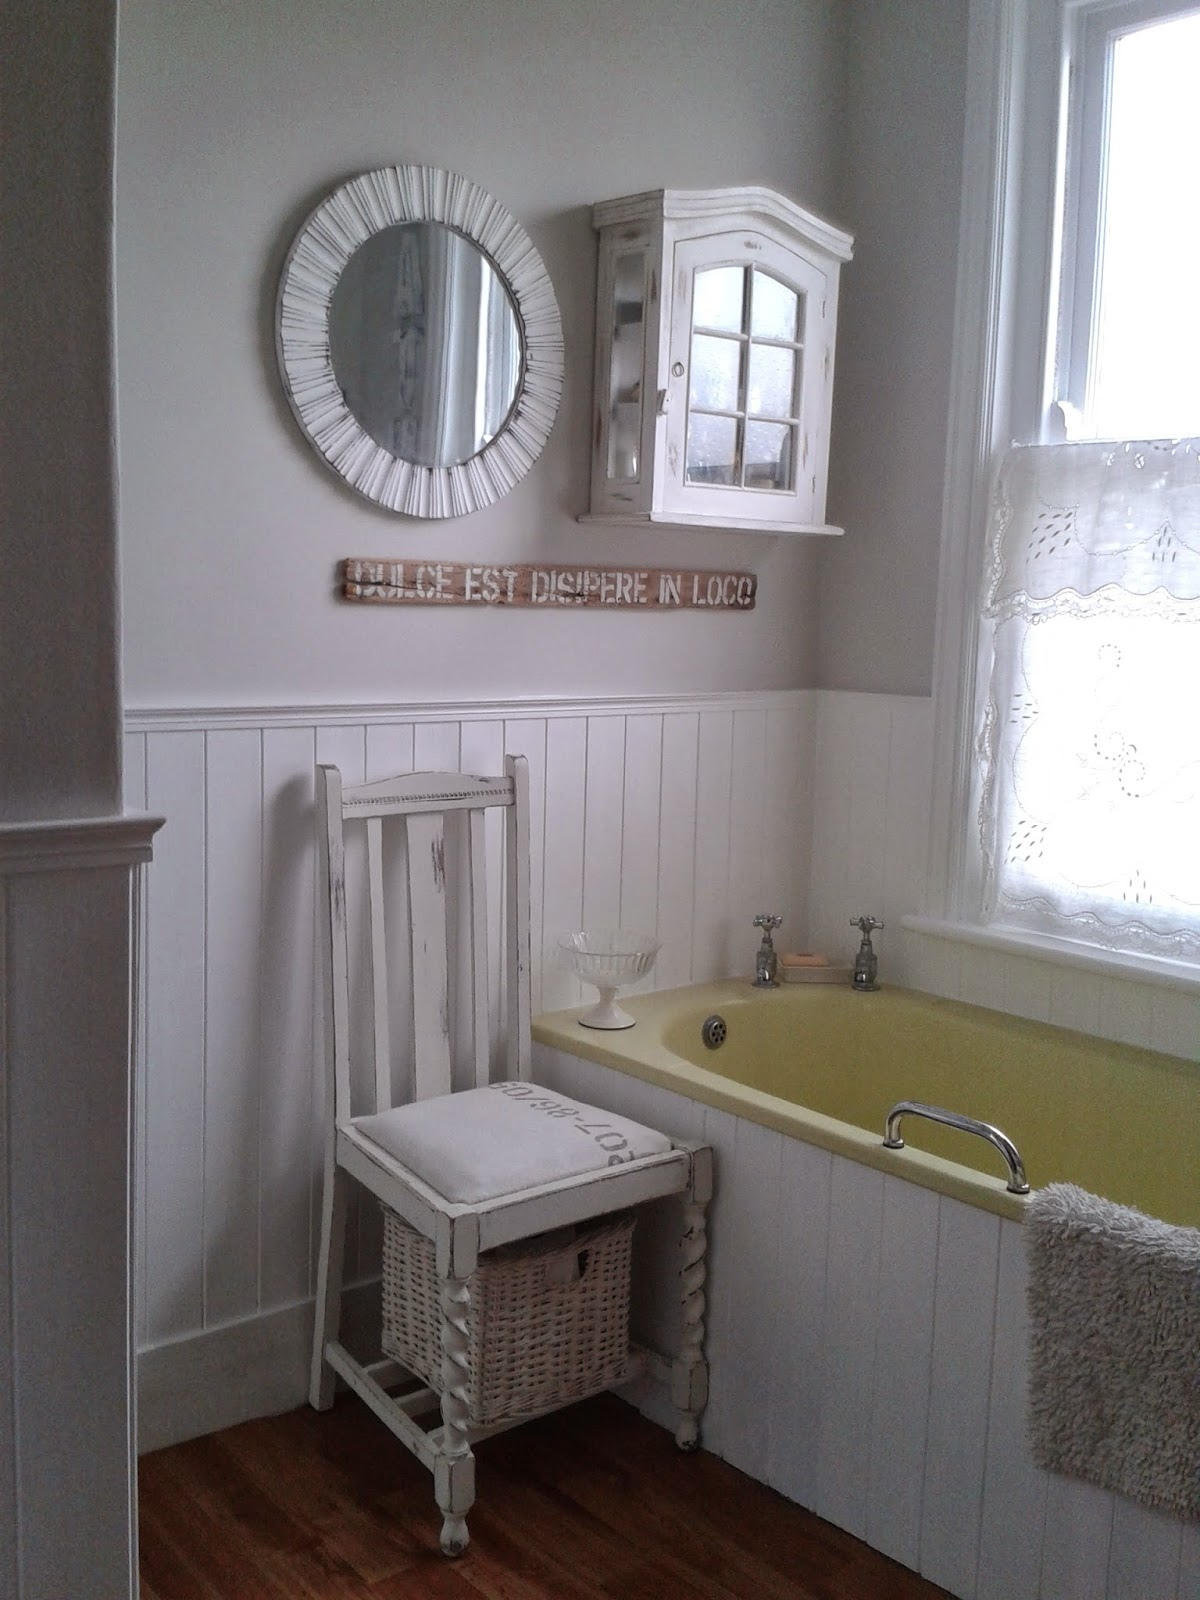 Tongue and groove for bathrooms - As I Mentioned In The Last Post There Is Now A Colour Above The New White Tongue And Groove Panelling Albeit A Very Pale Colour